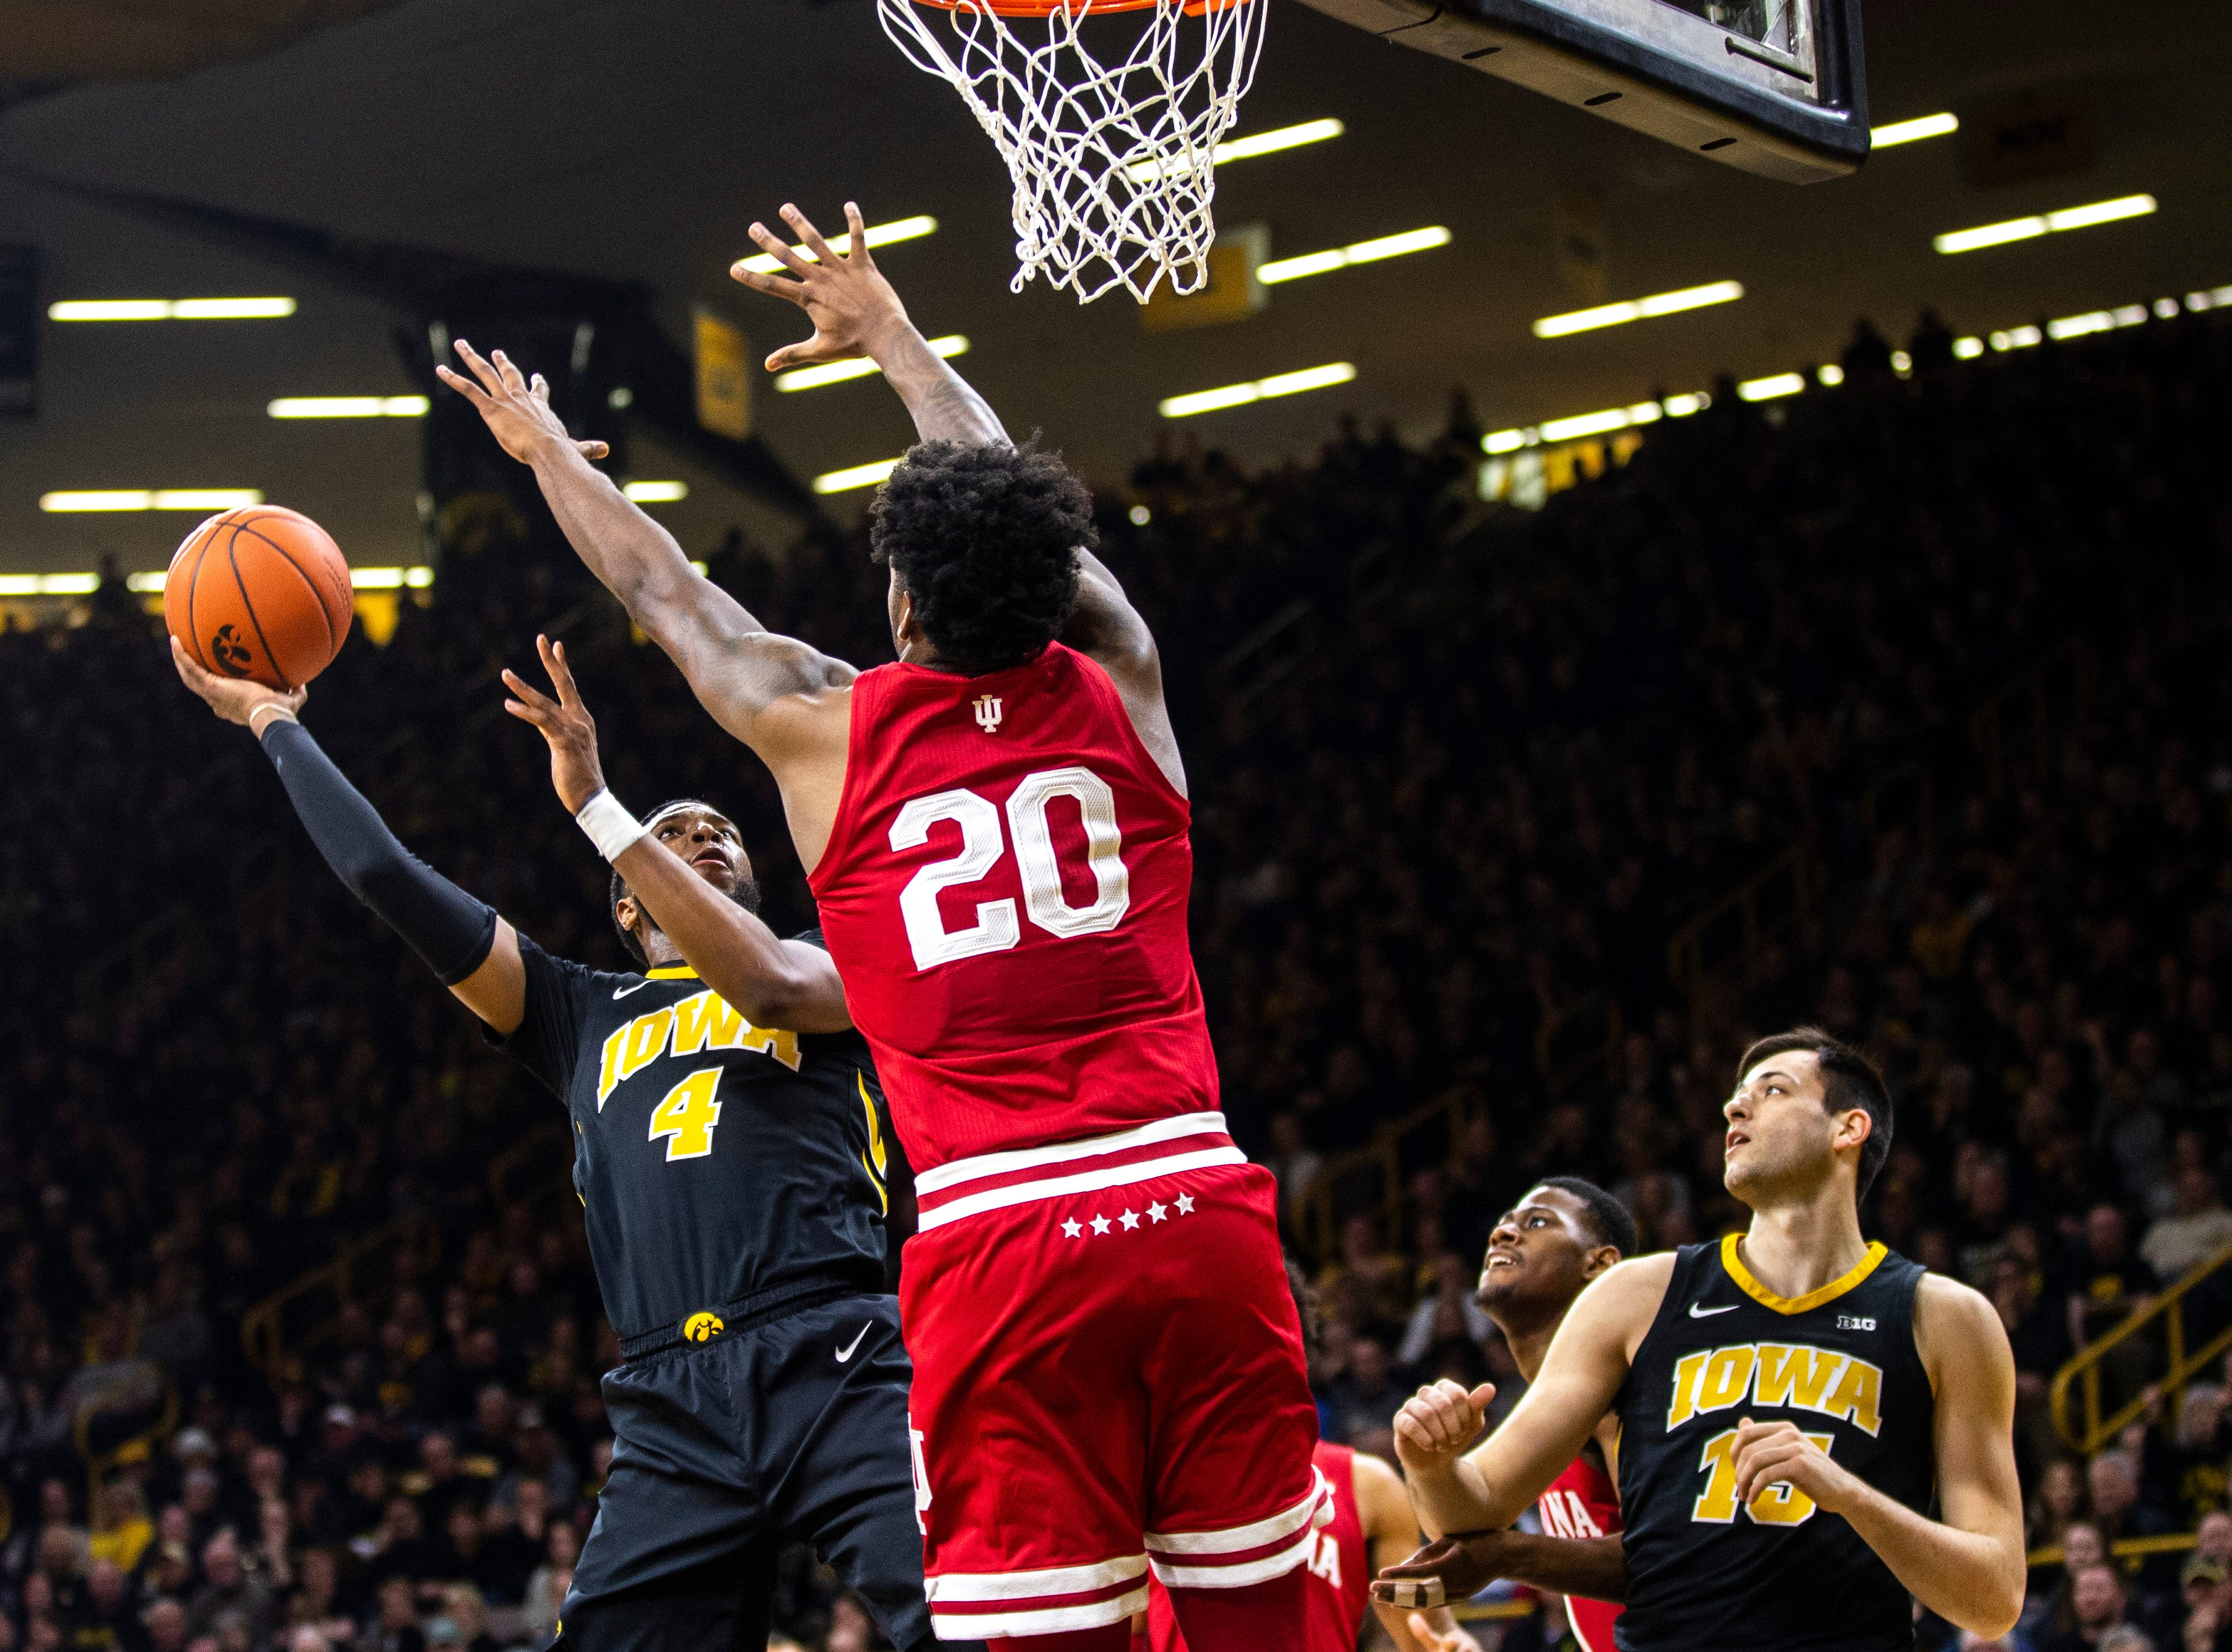 Iowa guard Isaiah Moss (4) attempts a basket while Indiana forward De'Ron Davis (20) defends during a NCAA Big Ten Conference men's basketball game on Friday, Feb. 22, 2019 at Carver-Hawkeye Arena in Iowa City, Iowa.